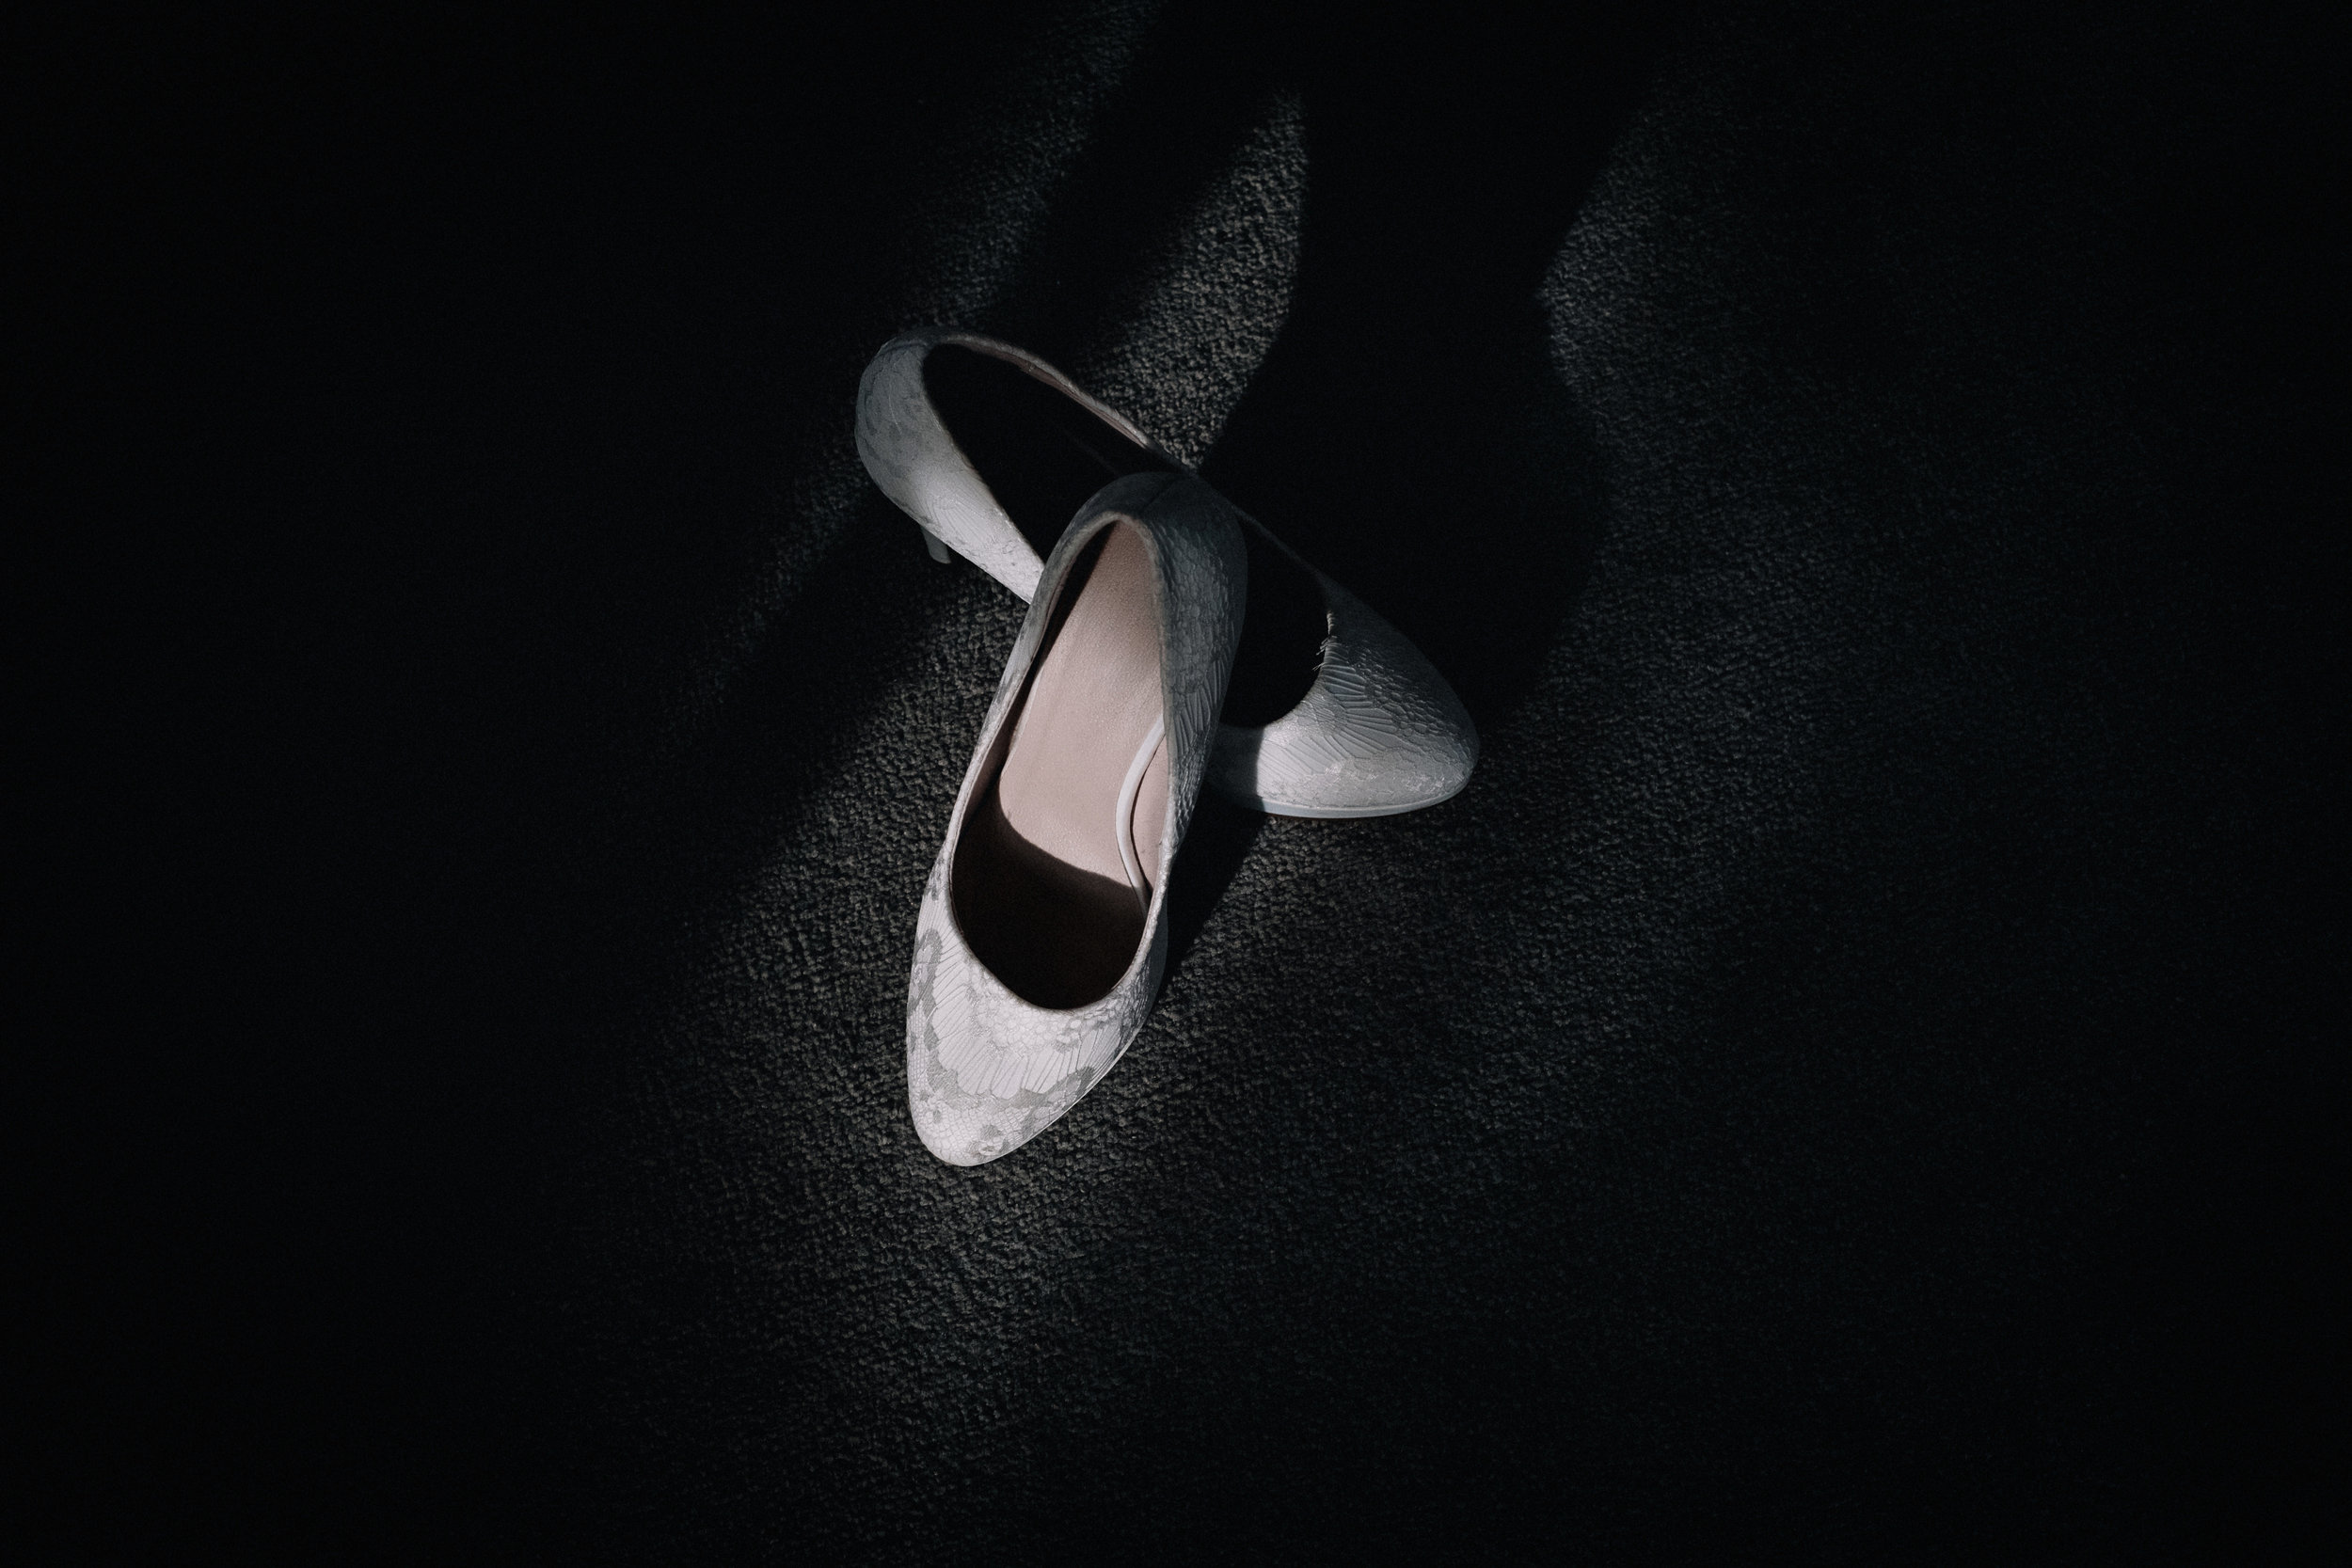 Bridal shoes in a shadows